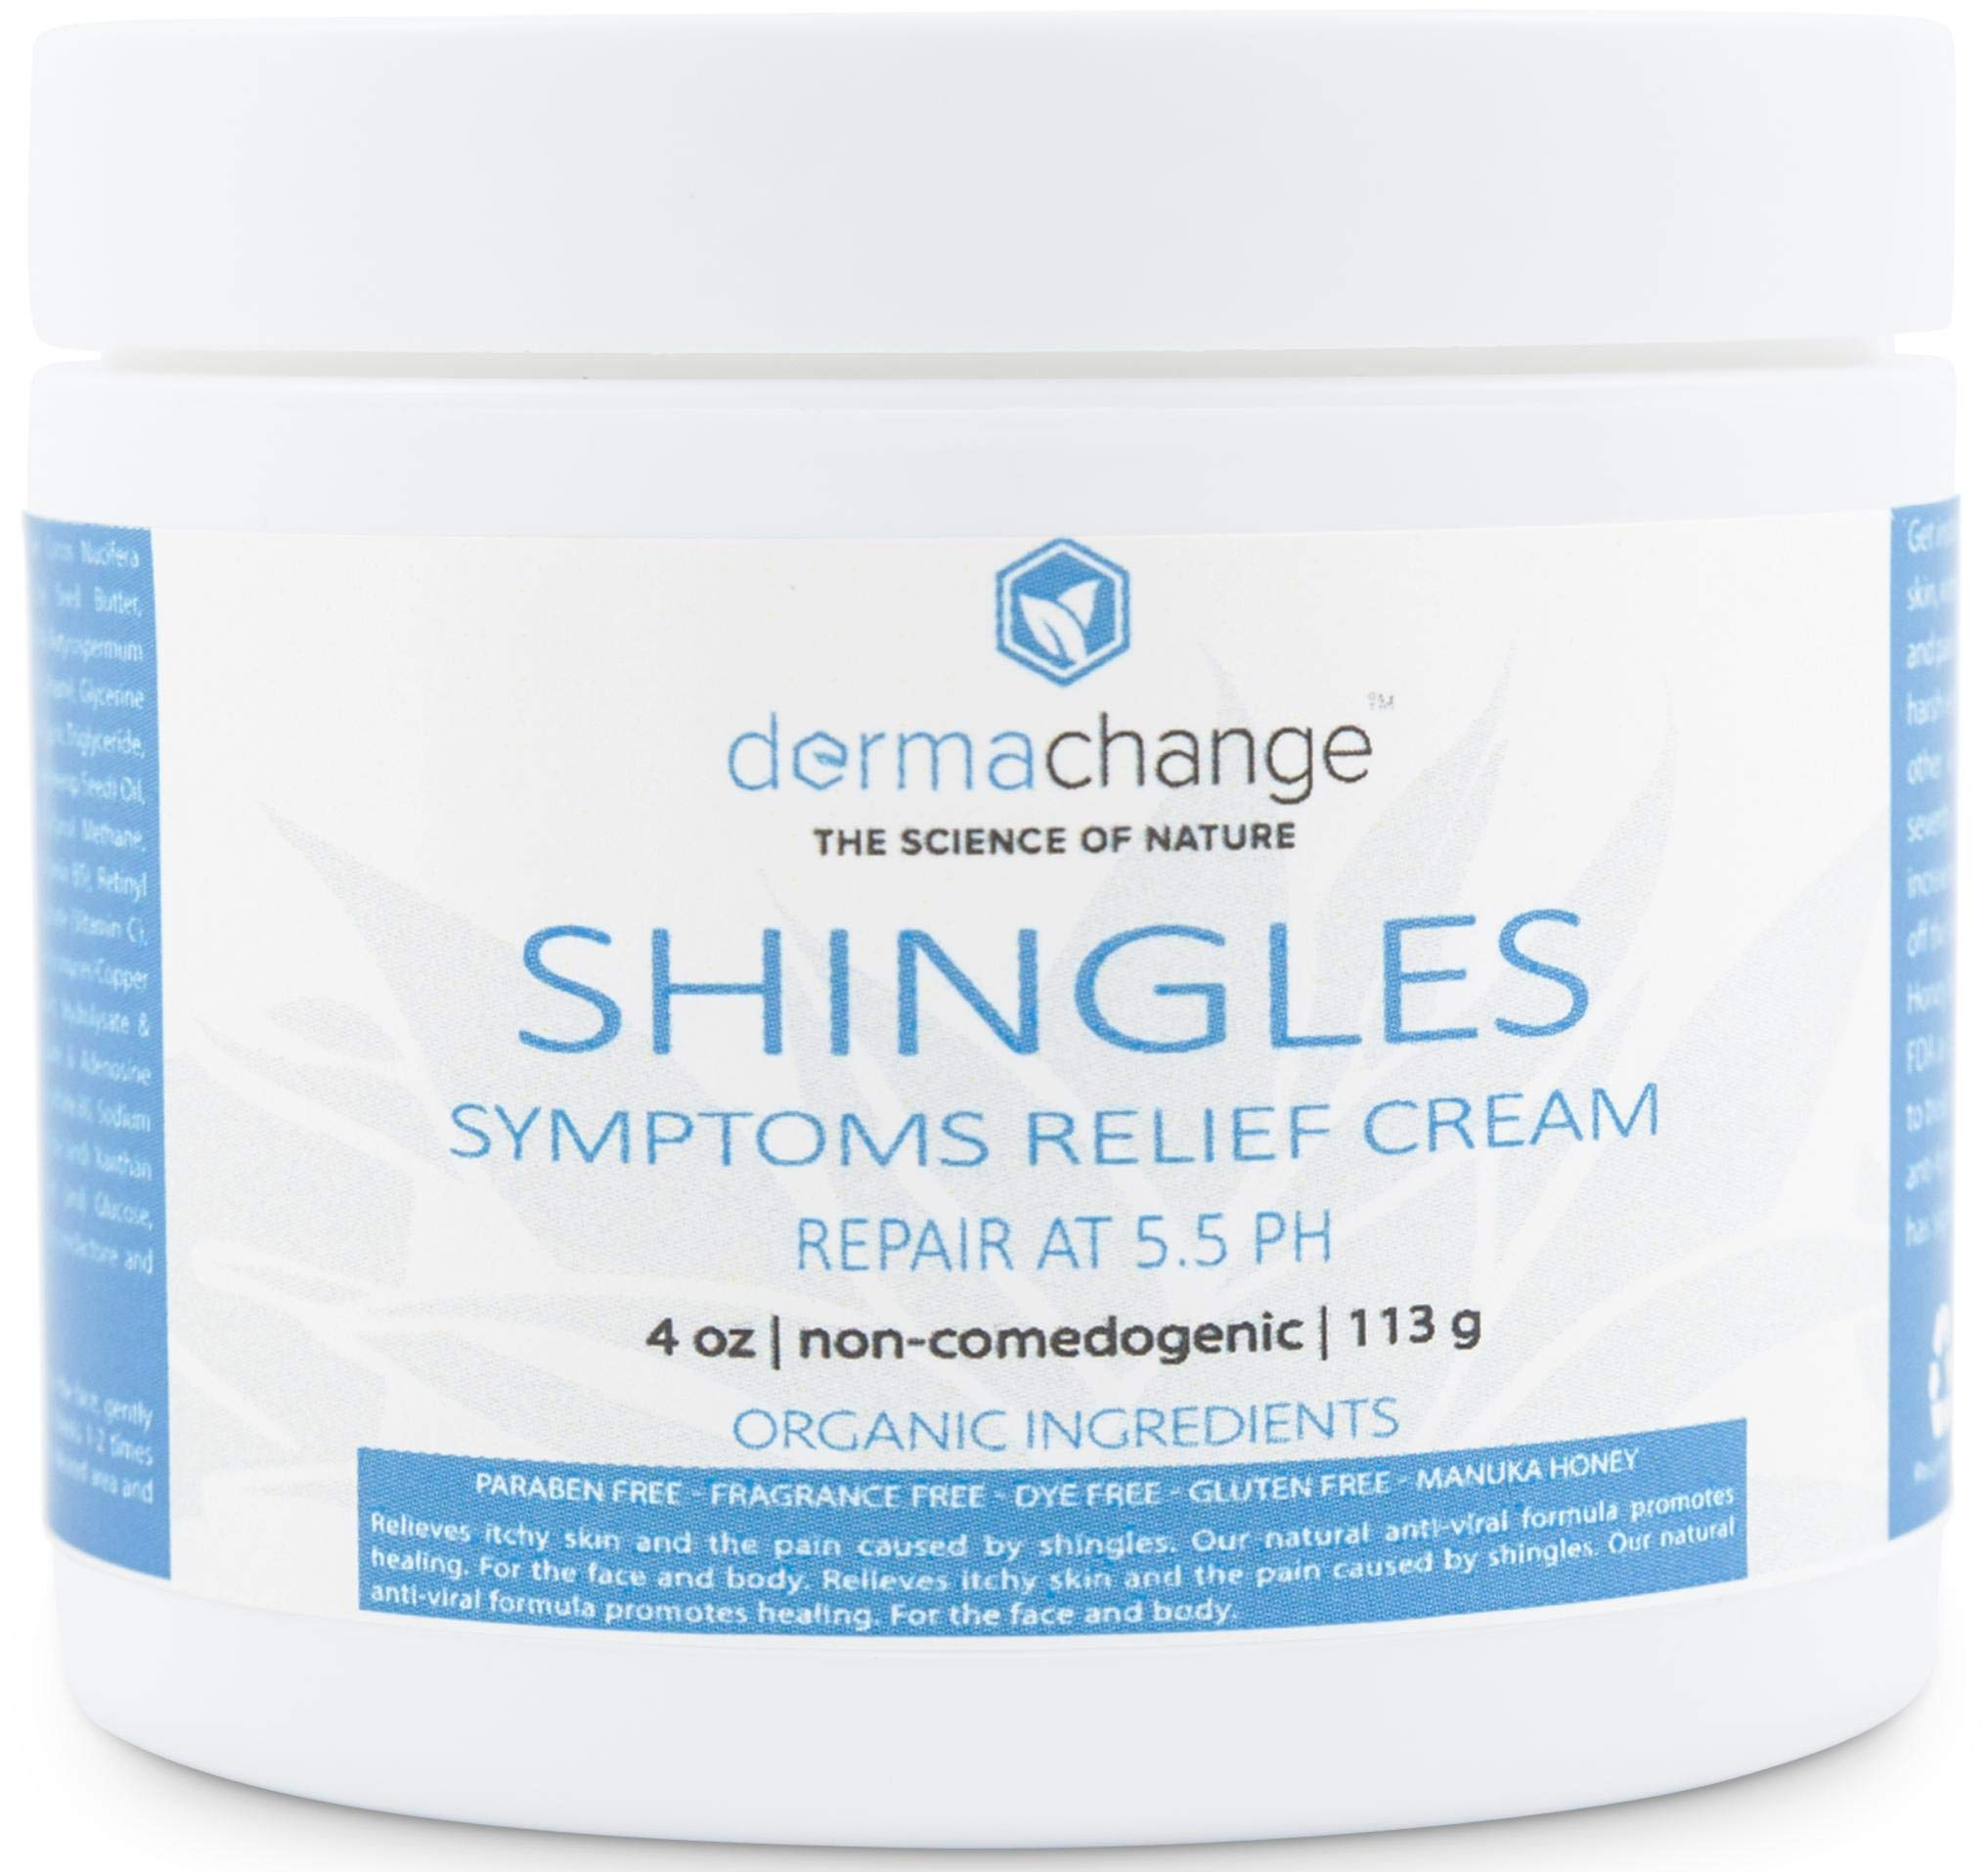 Organic Shingles Symptoms Relief Cream - with Manuka Honey - Face Body Recovery Cream - Nerve Pain Relief - Rash, Rosacea & Eczema Relief - Relieve Itchy Dry Skin (4 oz) - Made in US by DermaChange